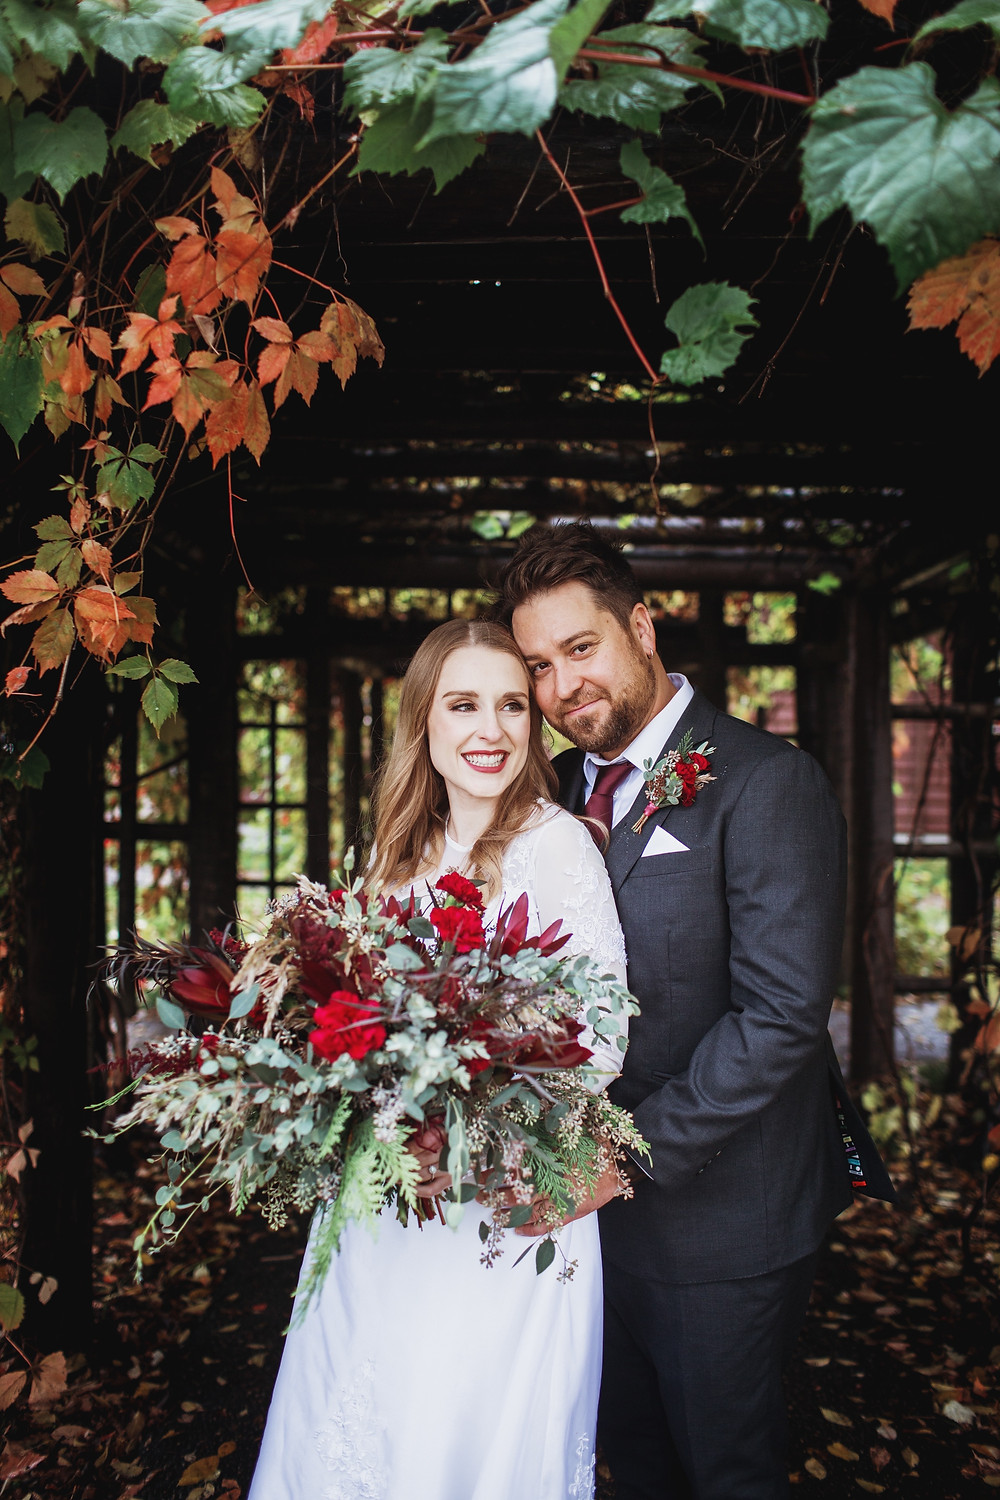 Manitoba bride and groom, fall wedding in Clear Lake.